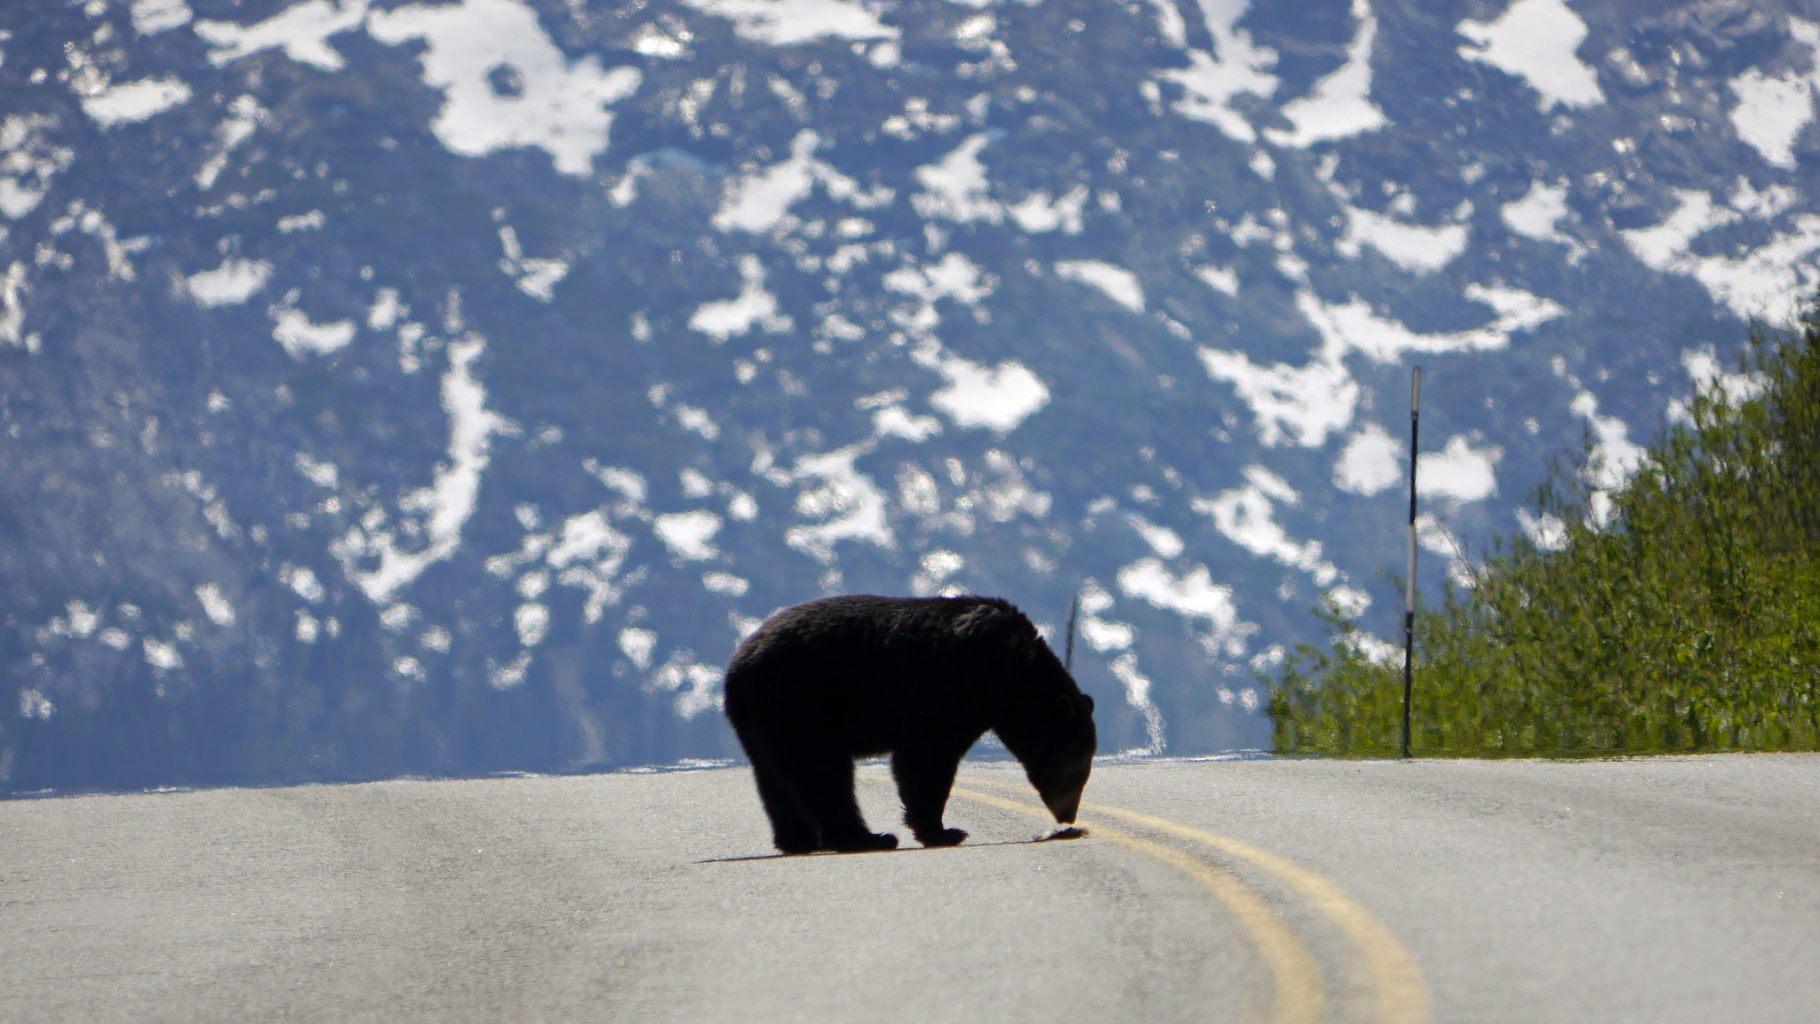 Image: American Grizzly in the middle of a paved road showing wildlife in a concrete world.